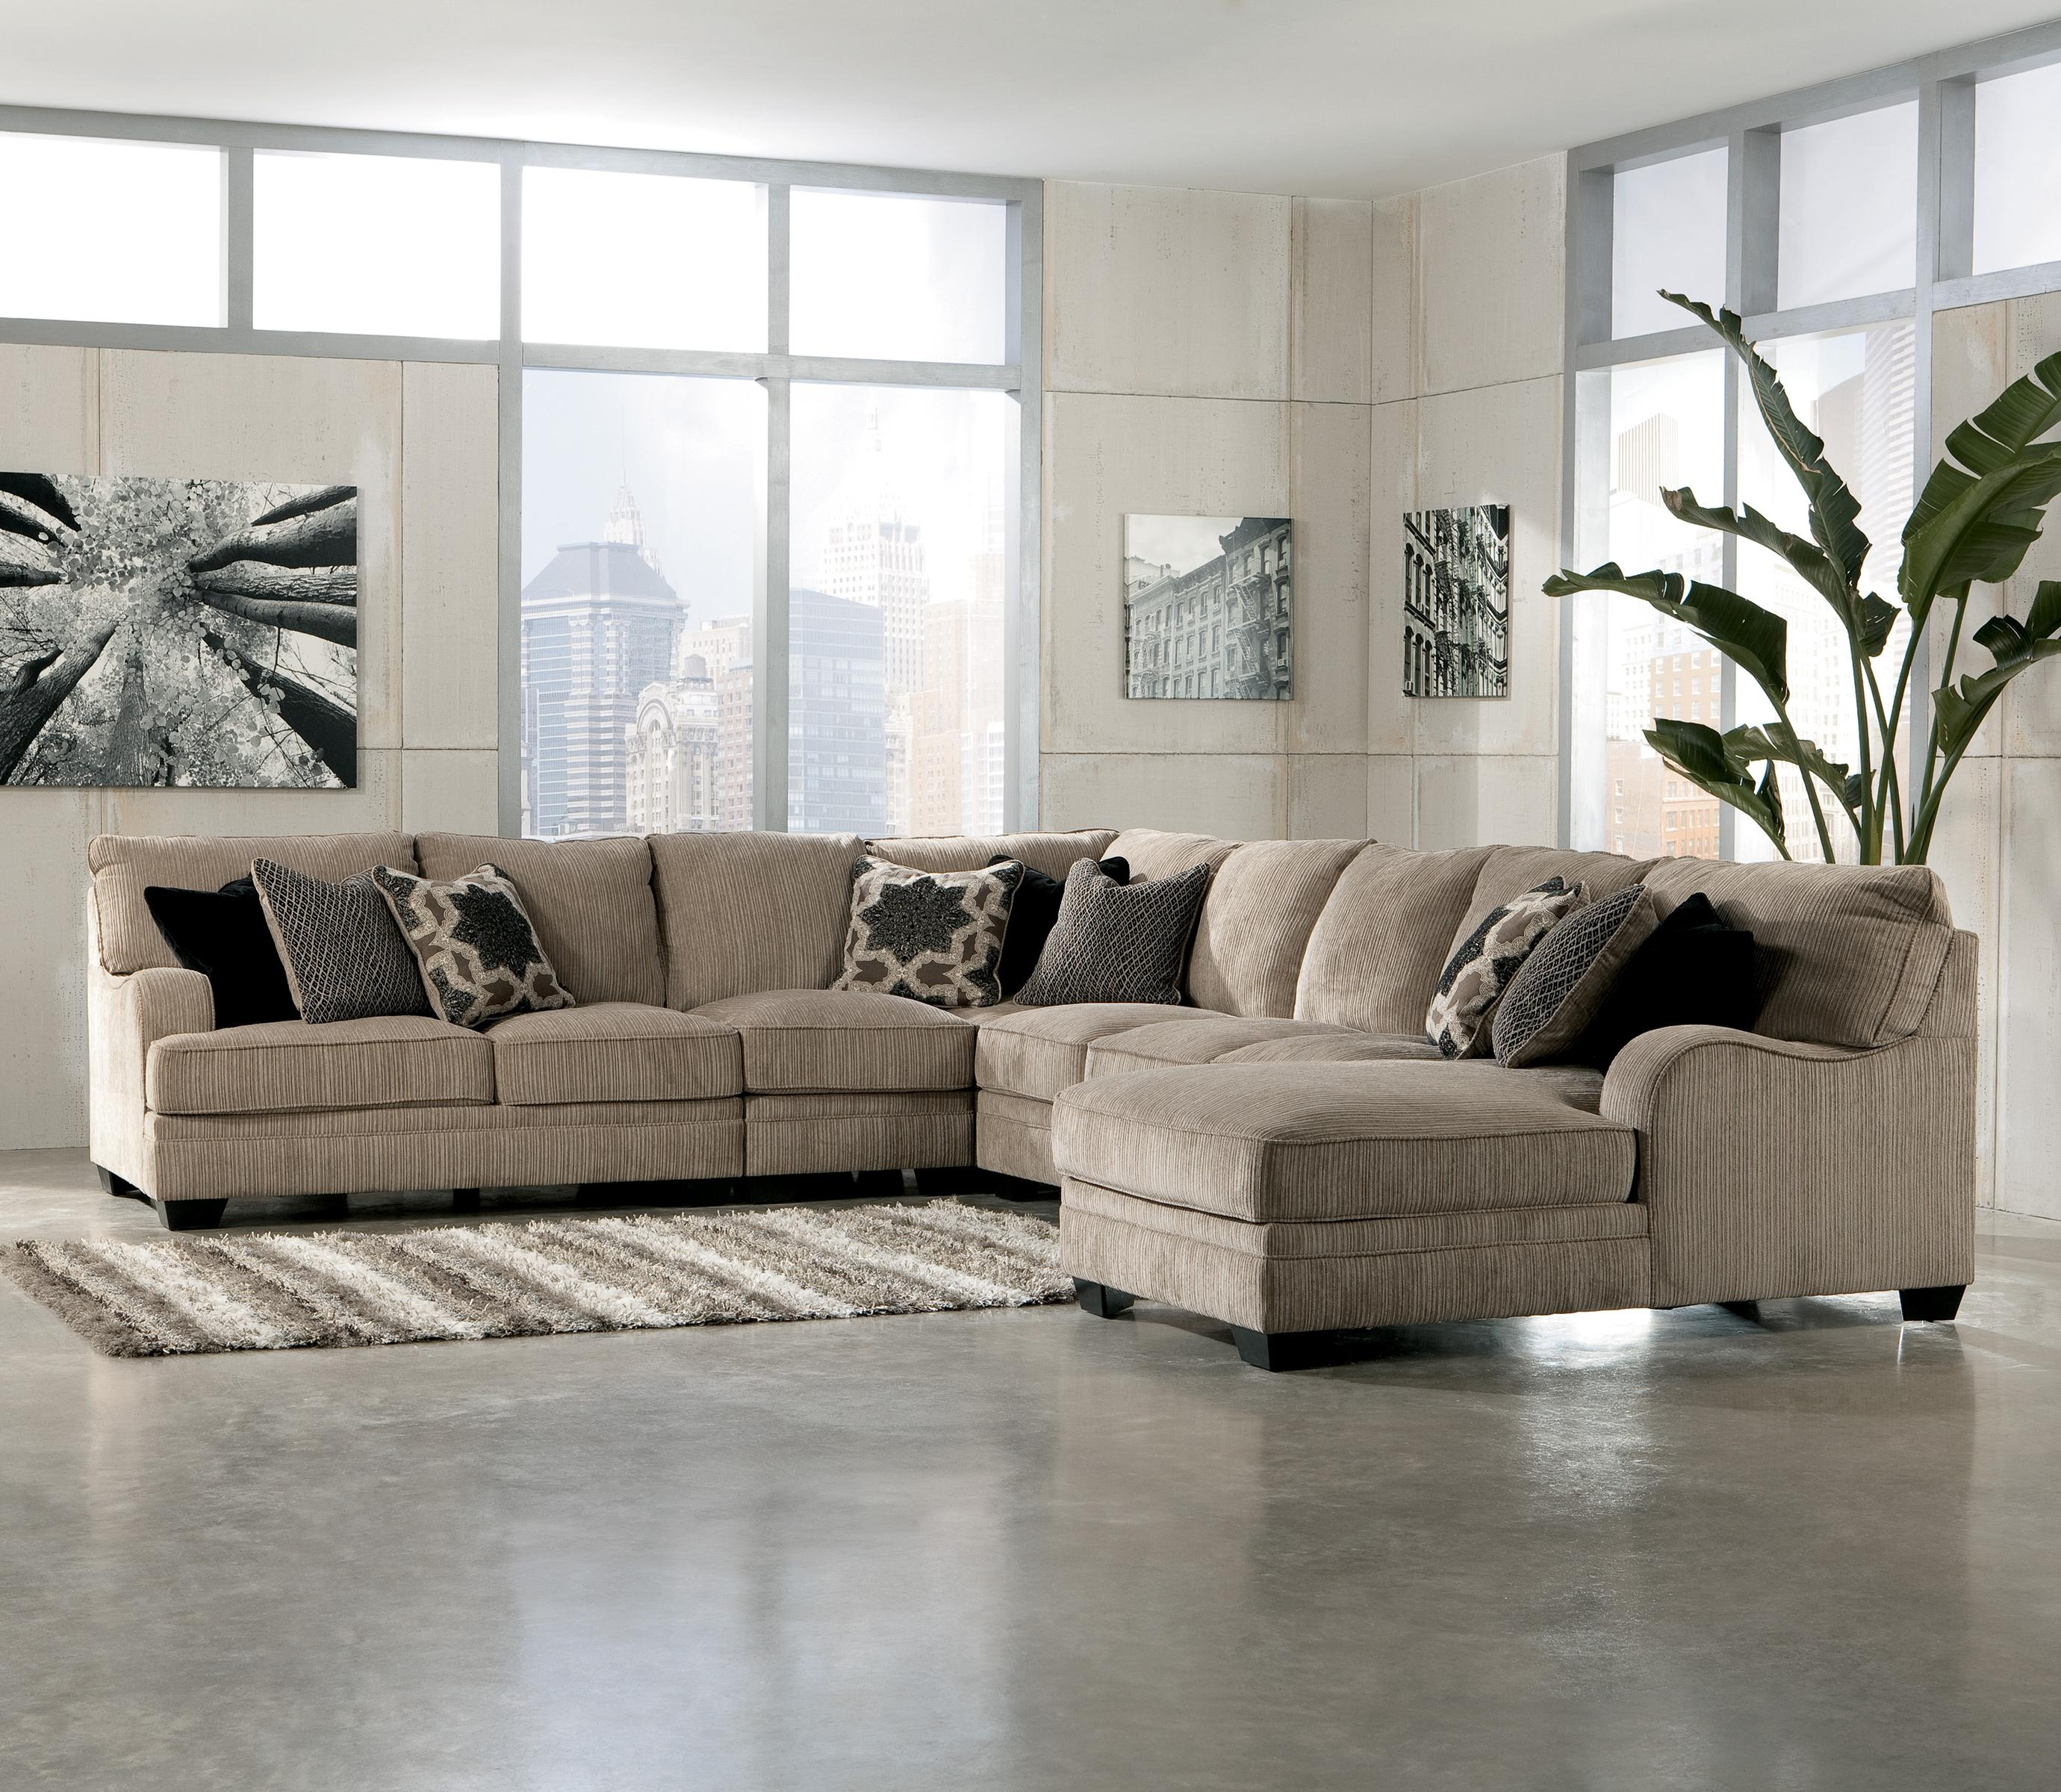 Etonnant Katisha   Platinum 5 Piece Sectional Sofa With Right Chaise By Signature  Design By Ashley